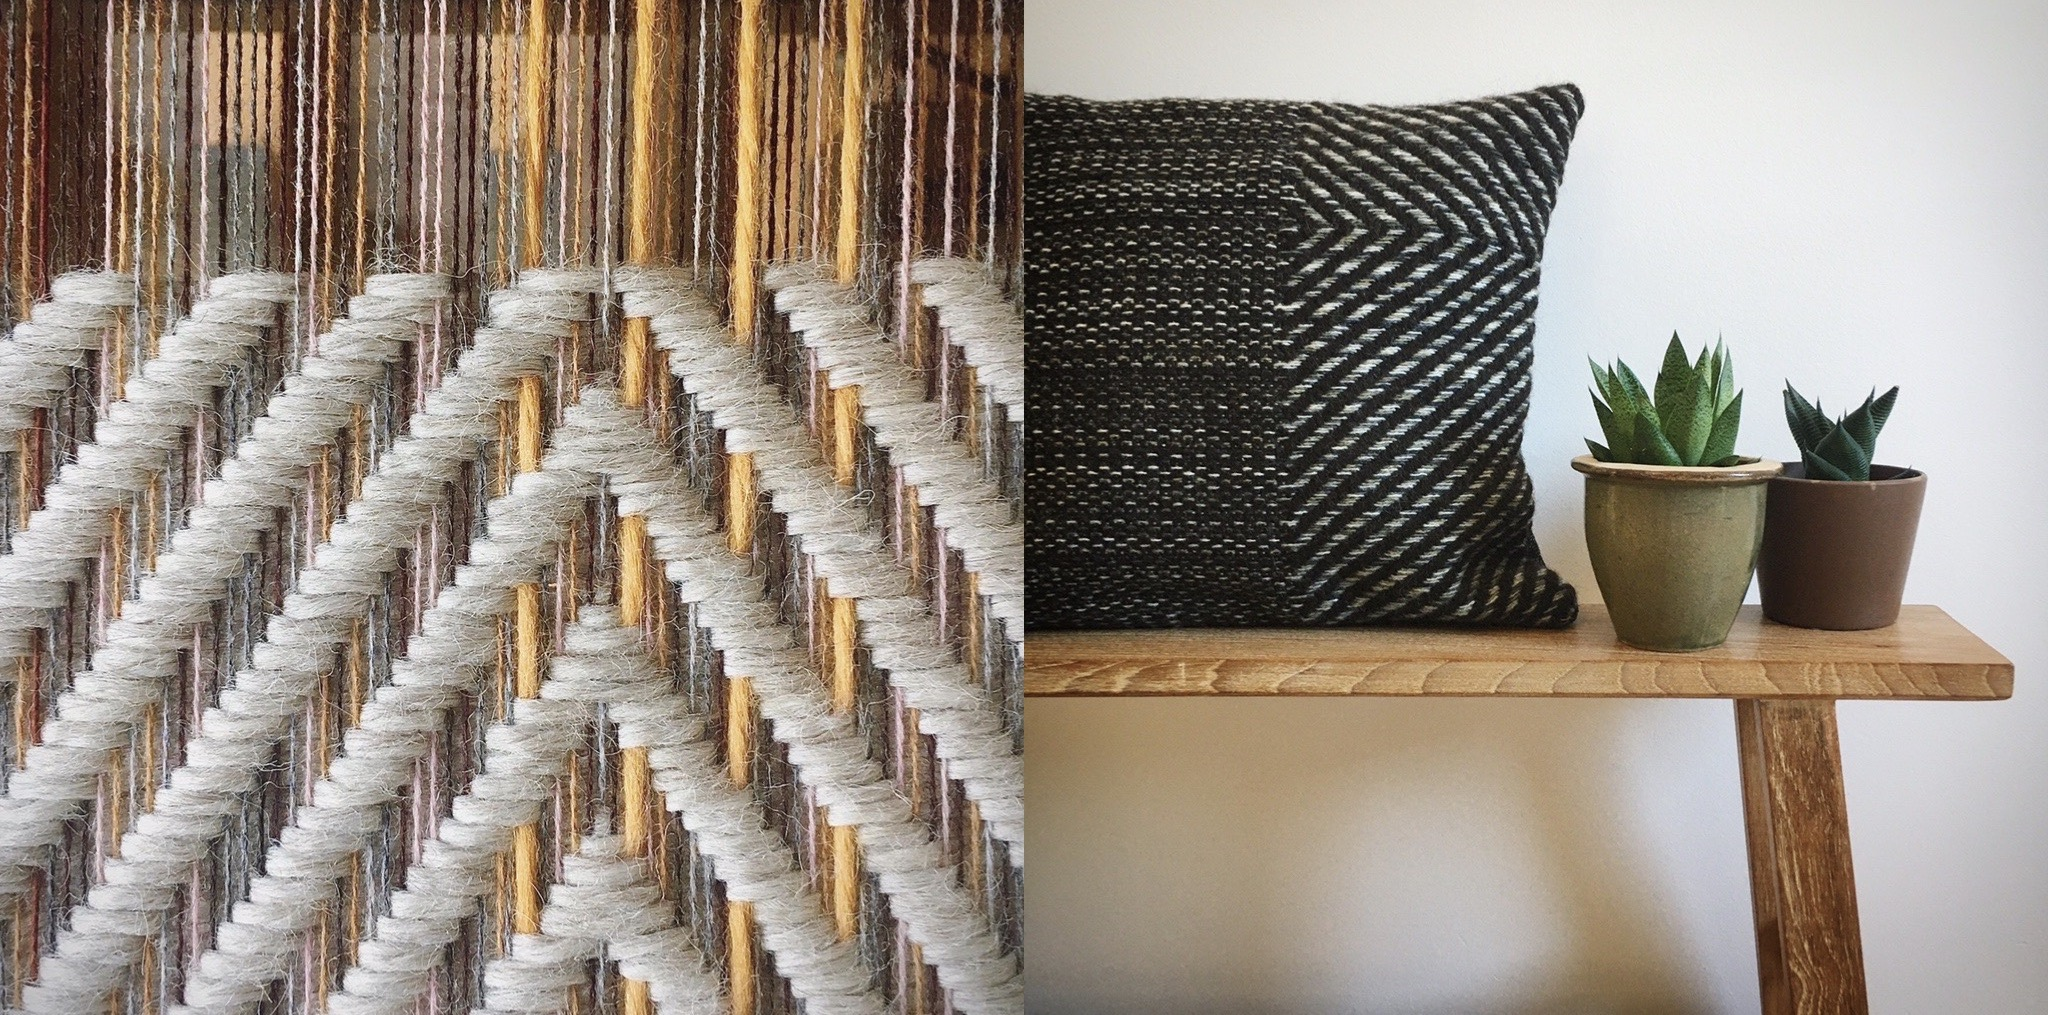 Locally sourced wool cushion and work on the loom